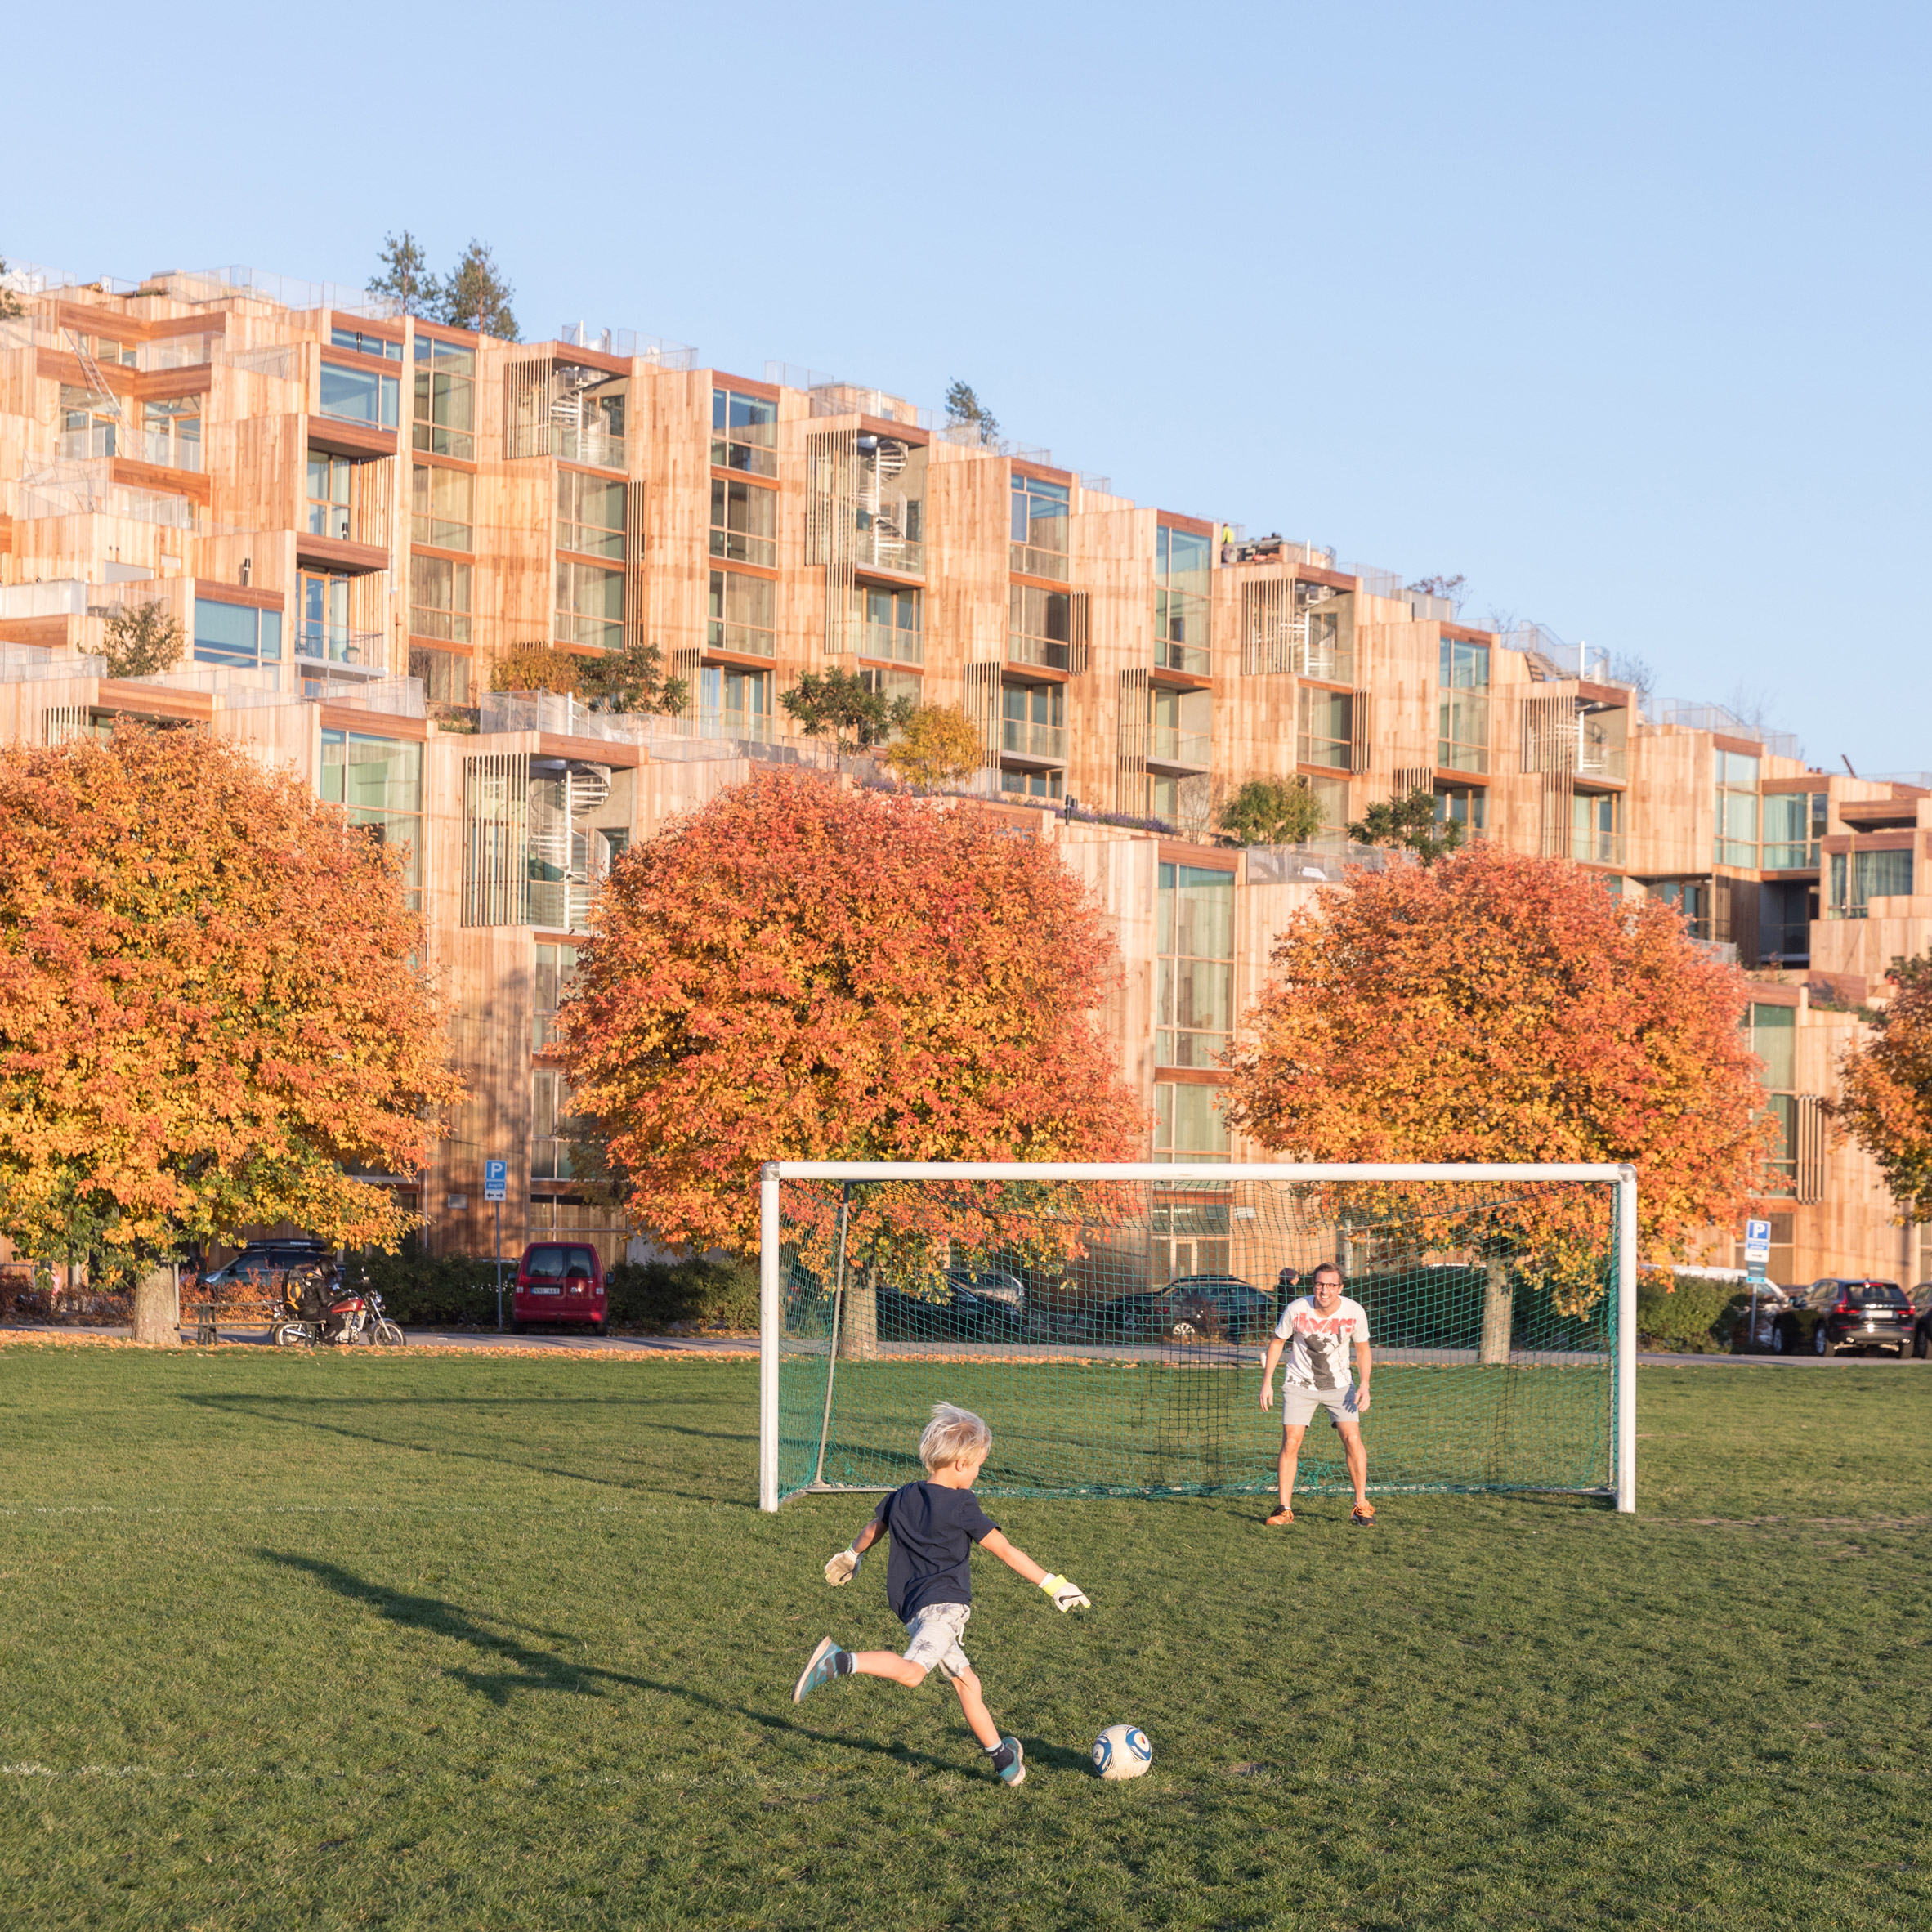 BIG's 79 & Park housing in Stockholm is designed to look